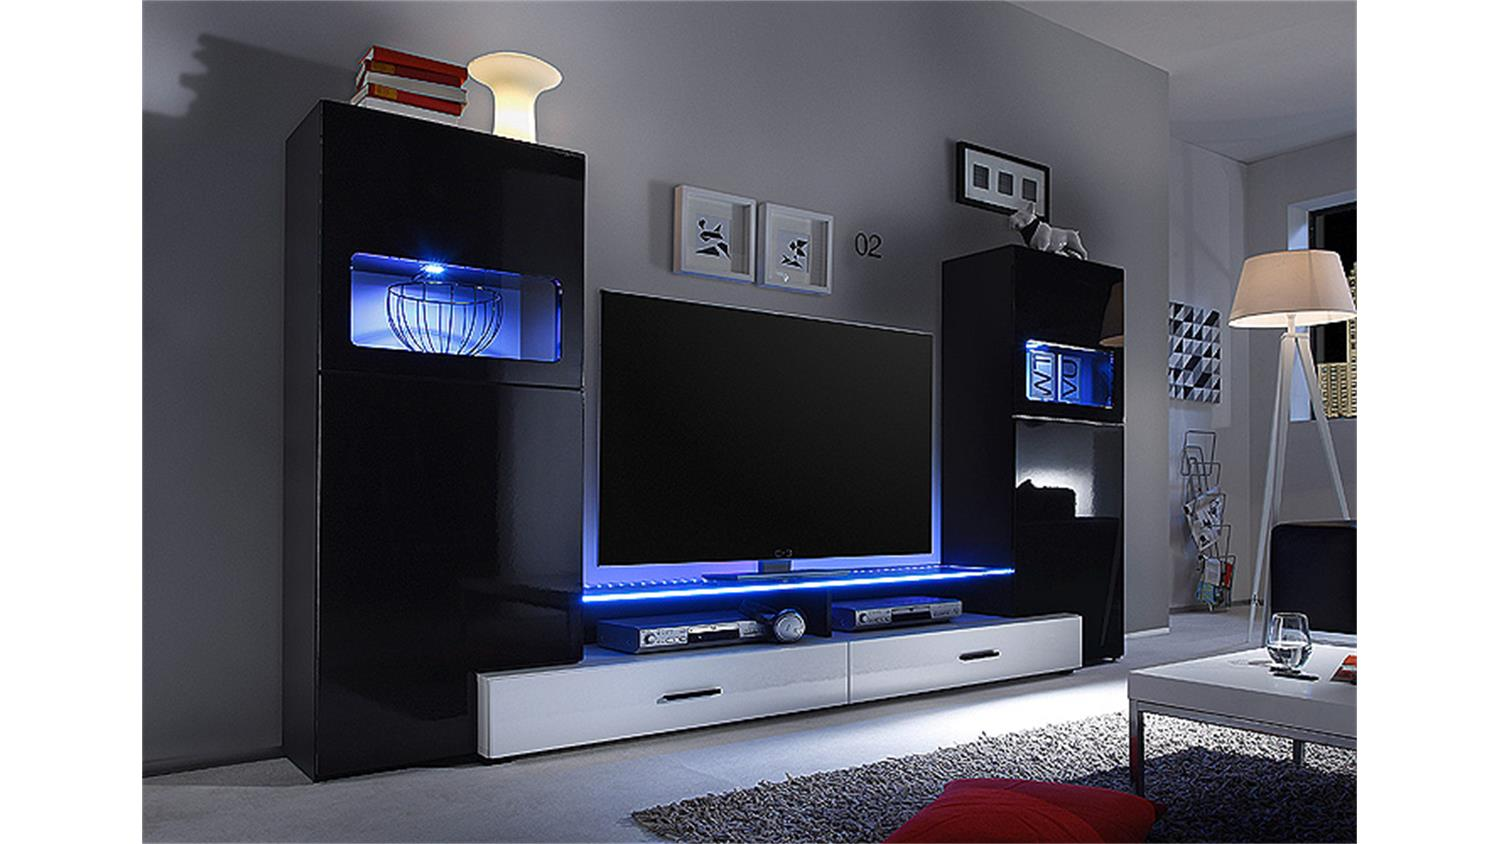 wohnwand cave anbauwand schwarz hochglanz wei mit led. Black Bedroom Furniture Sets. Home Design Ideas